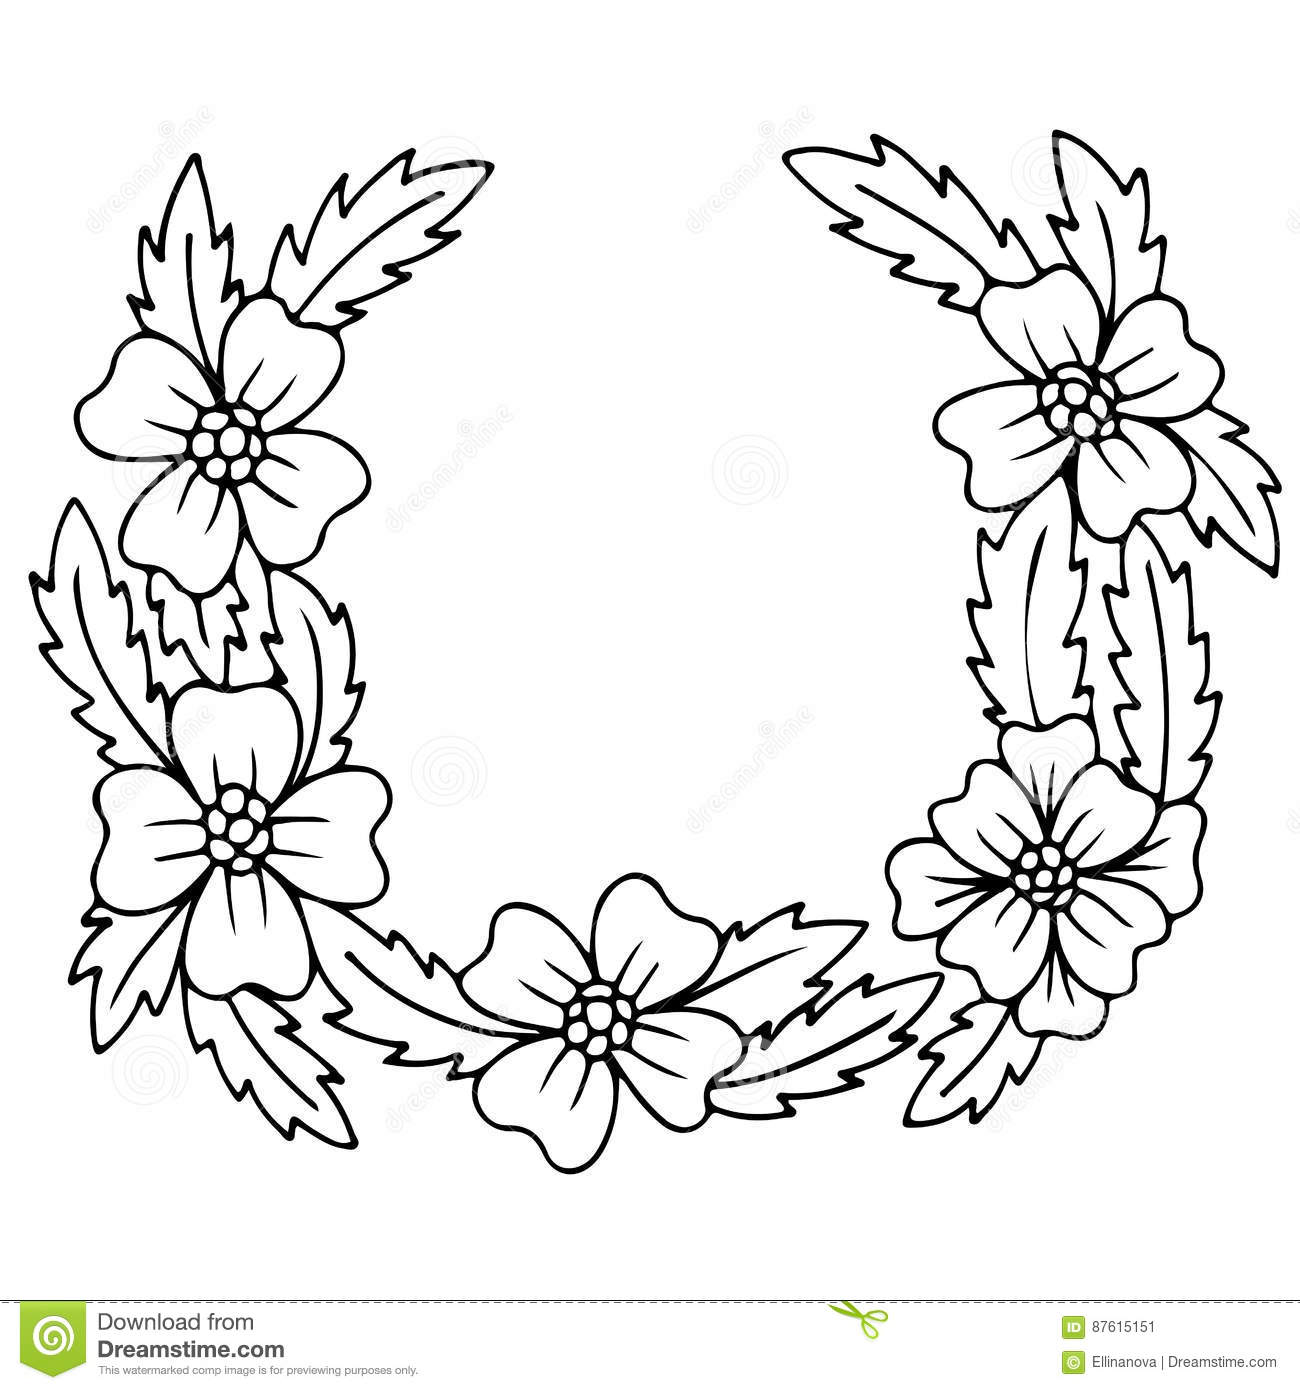 Black and white floral wreath stock vector image 65241515 - Royalty Free Vector Black Card Floral Flower Frame Invitation Wreath